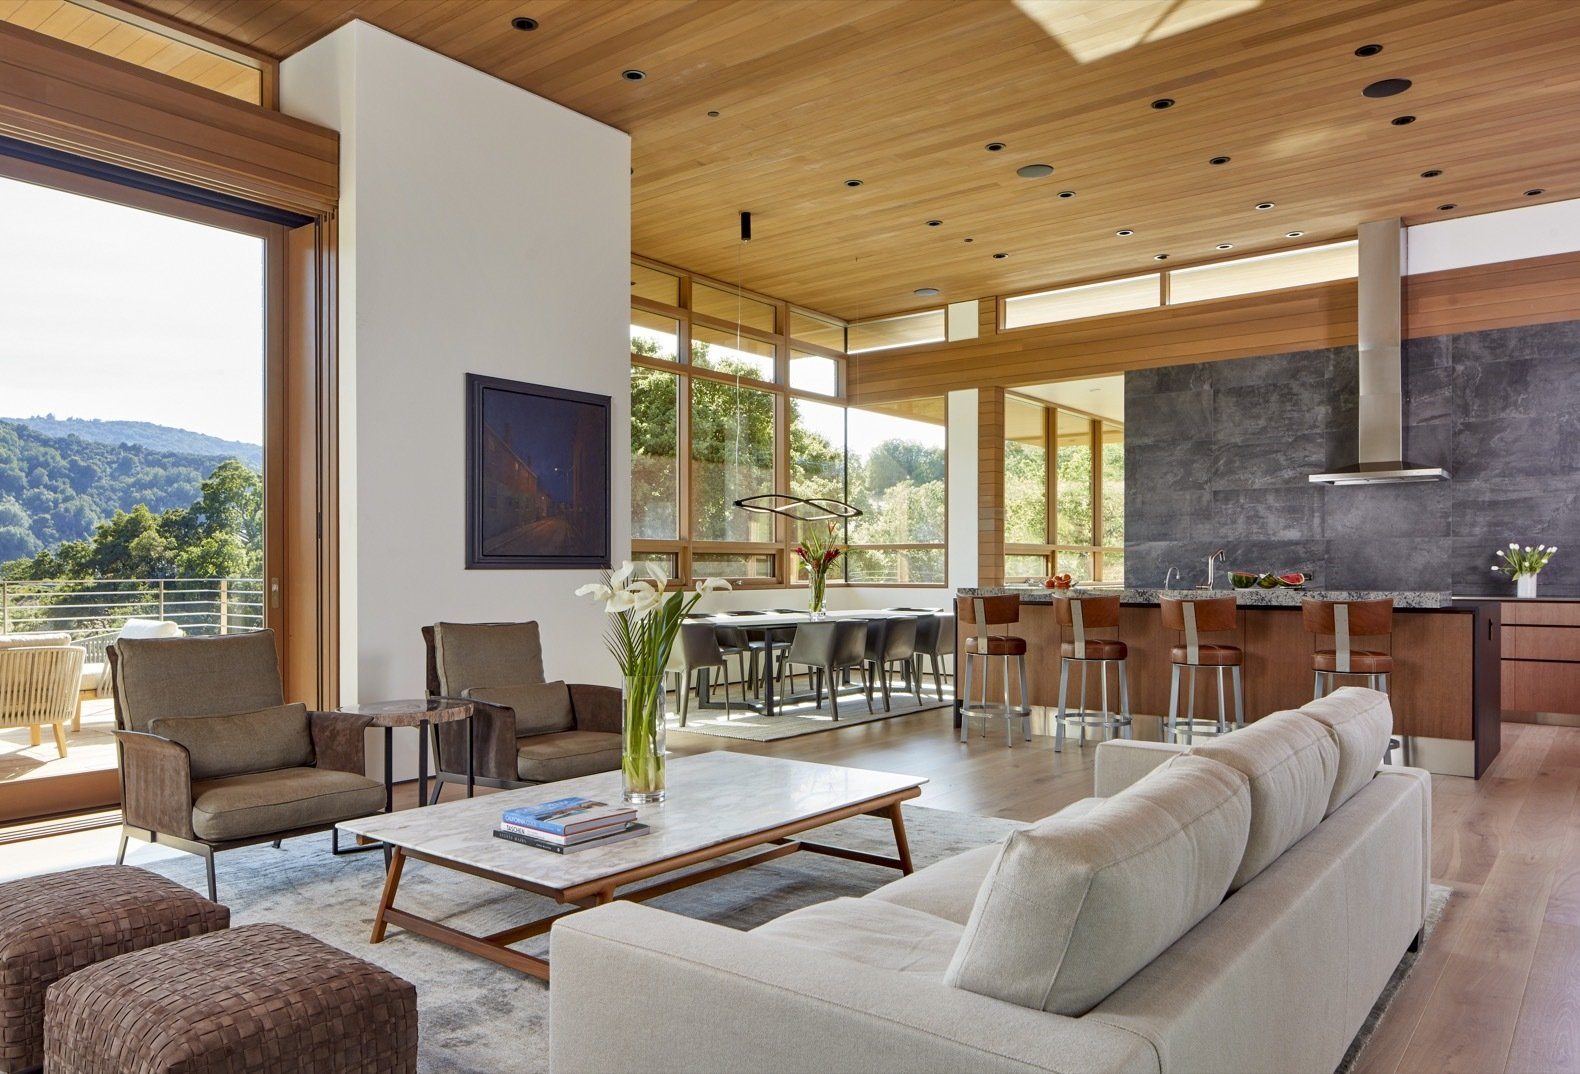 Living, Coffee Tables, Sofa, Chair, Medium Hardwood, Recessed, Table, Rug, Pendant, Stools, and Bar A soaring ceiling delivers a sense of drama to the open-plan great room.   Best Living Coffee Tables Pendant Recessed Chair Photos from A Californian Home Gently Steps Down on an Oak-Studded Landscape